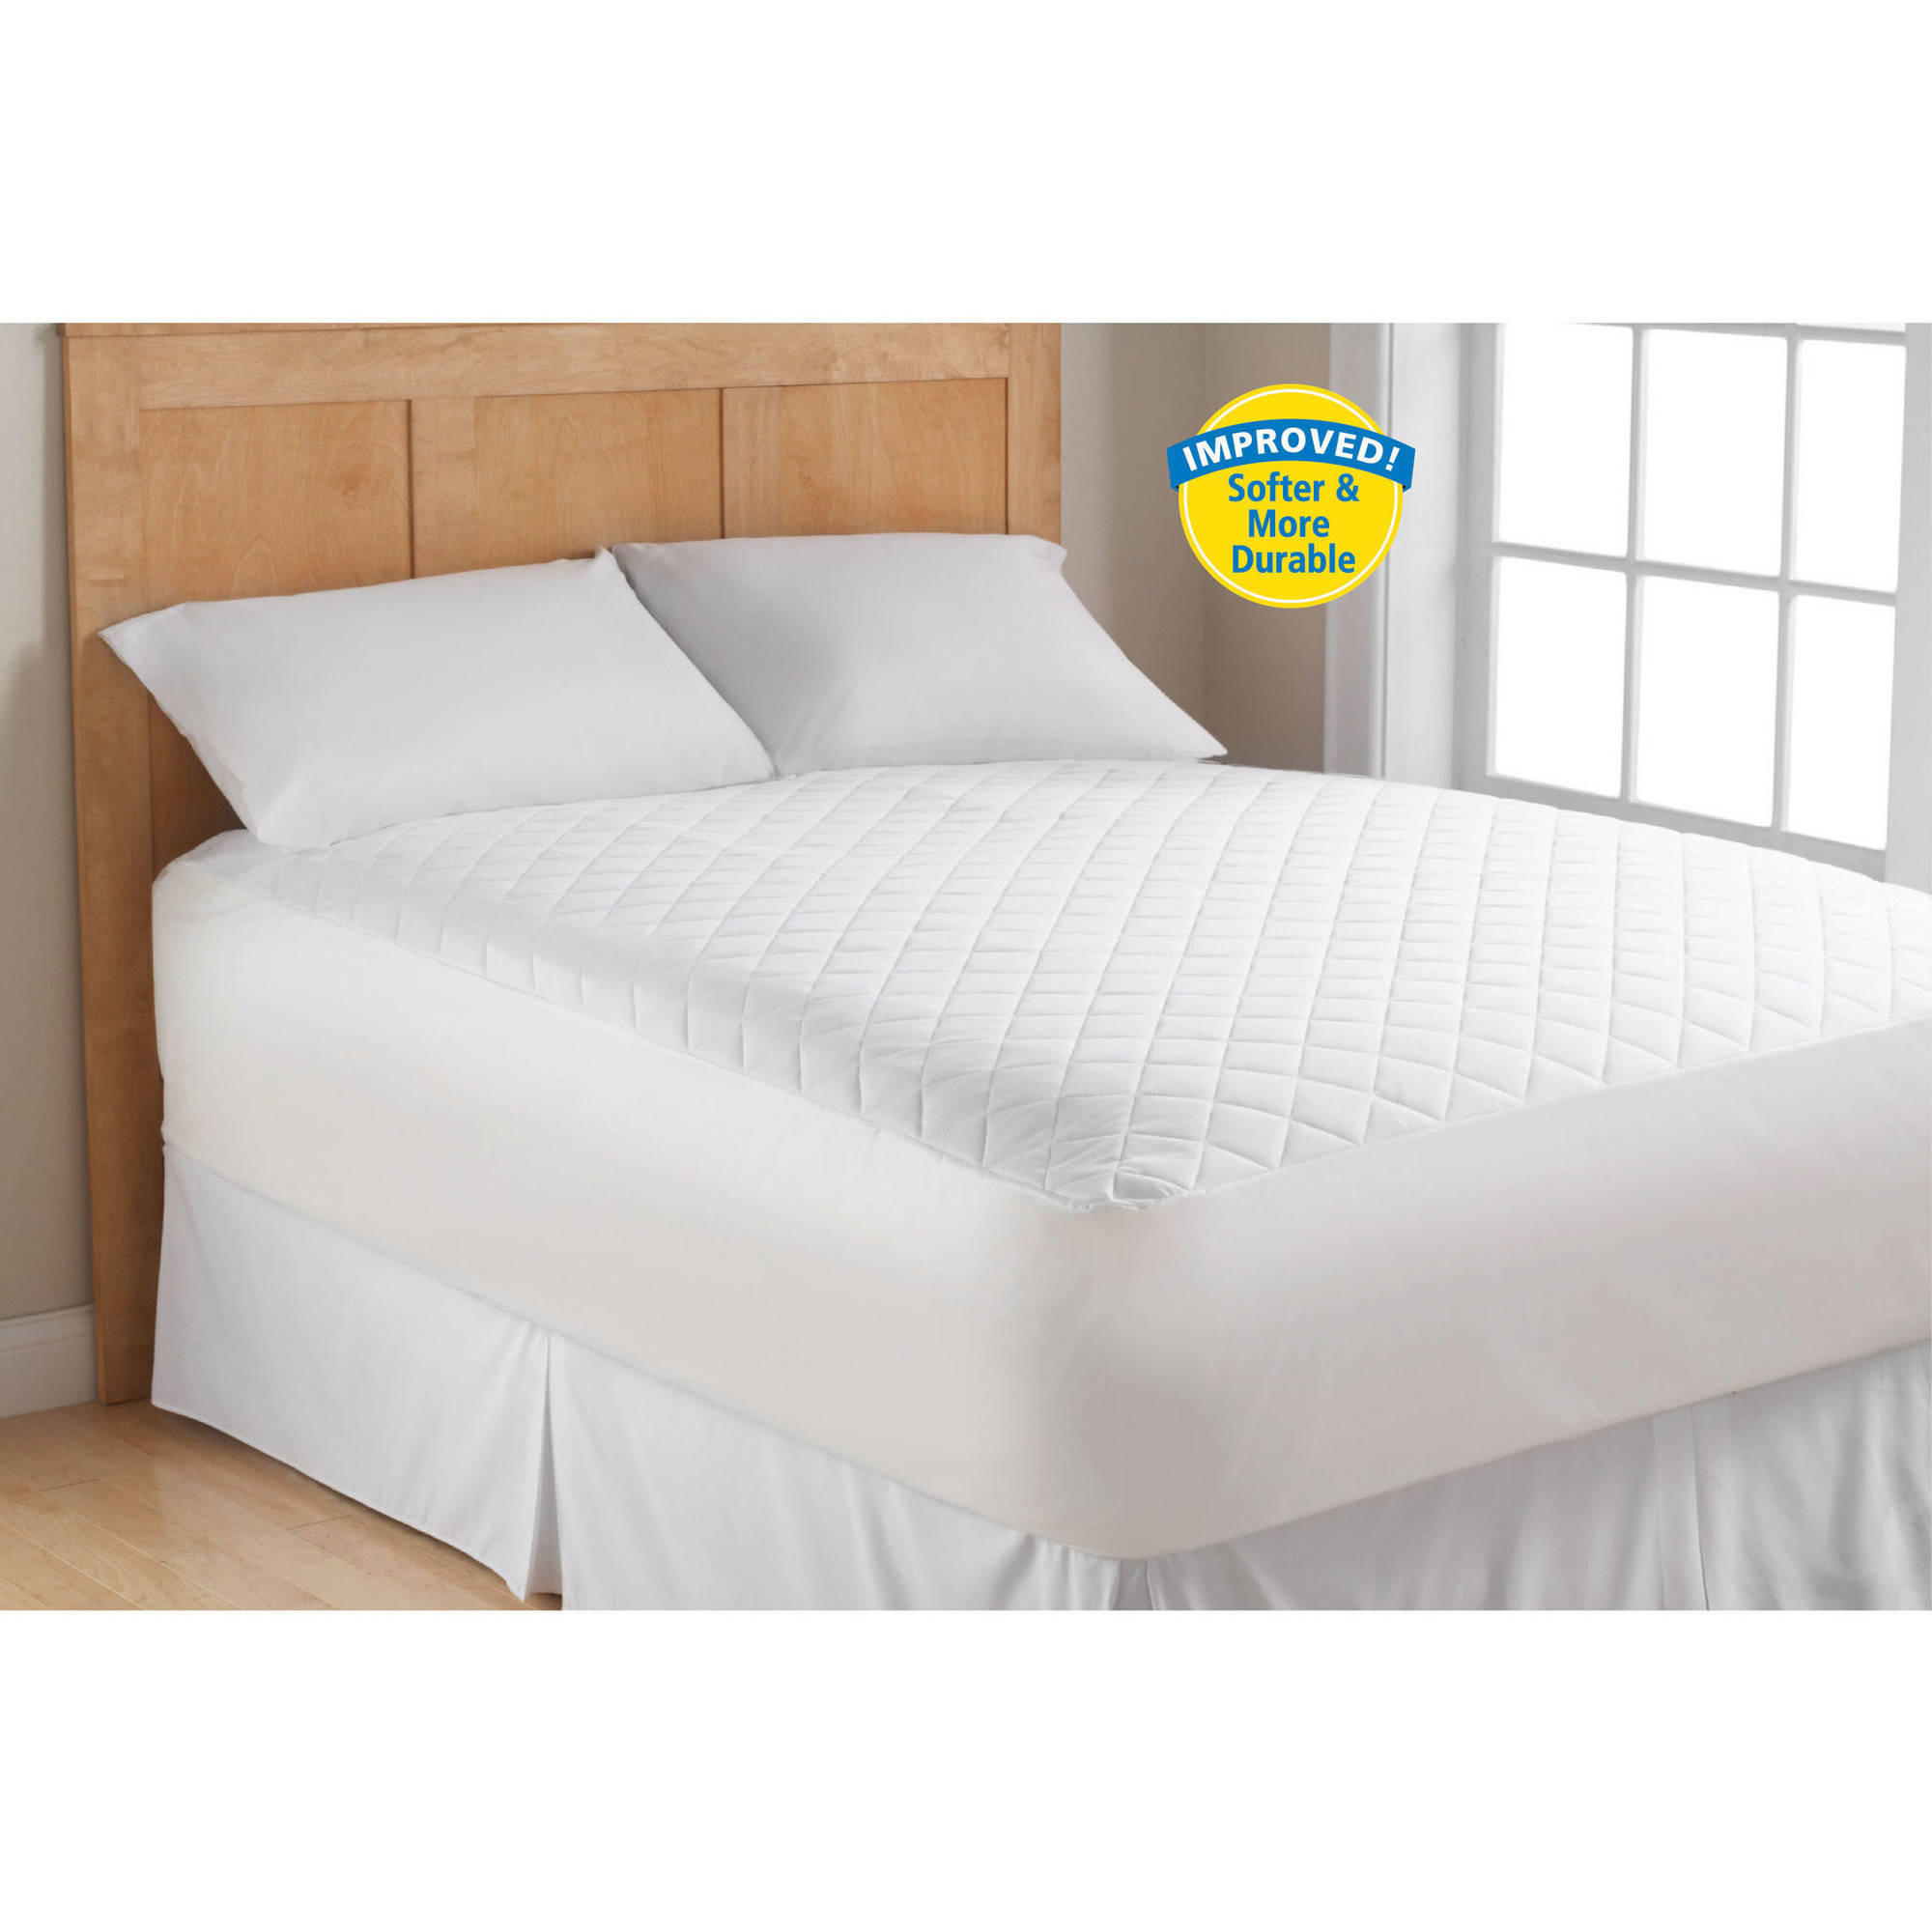 size mattress cover co prod twin spin i hei pcok